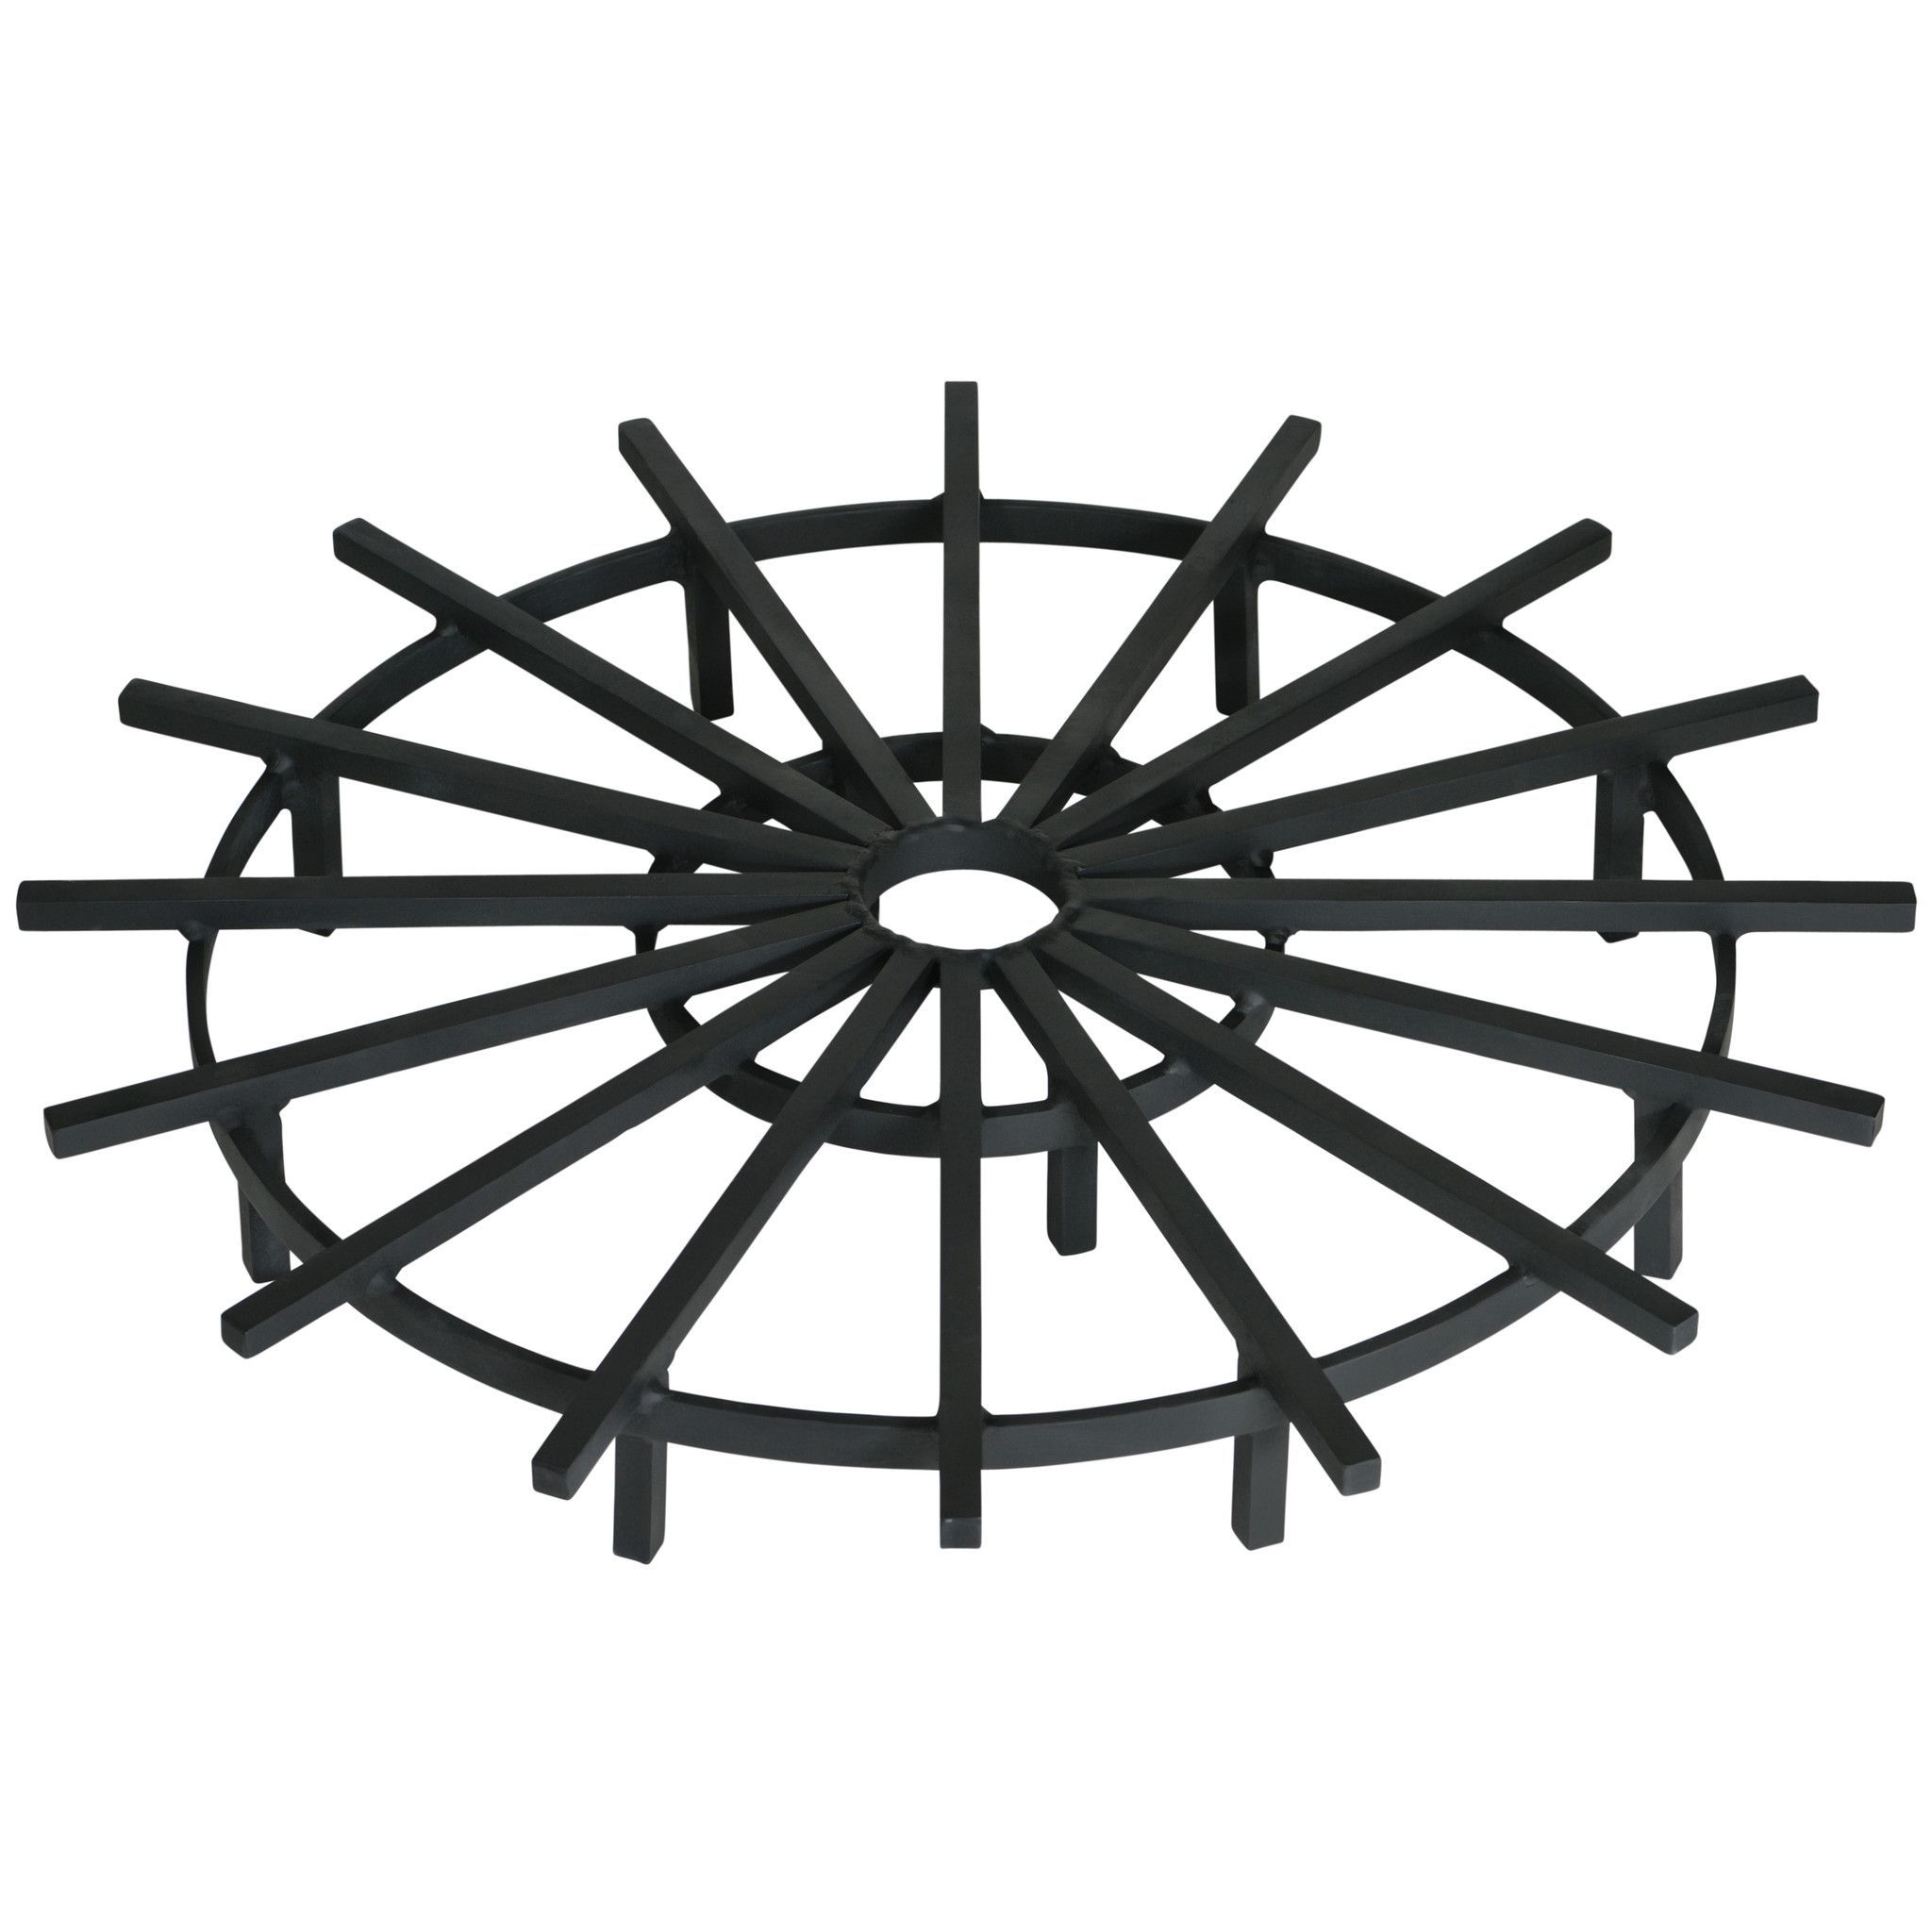 20 Inch Super Heavy Duty Ship\'s Wheel Fire Pit Grate | Products